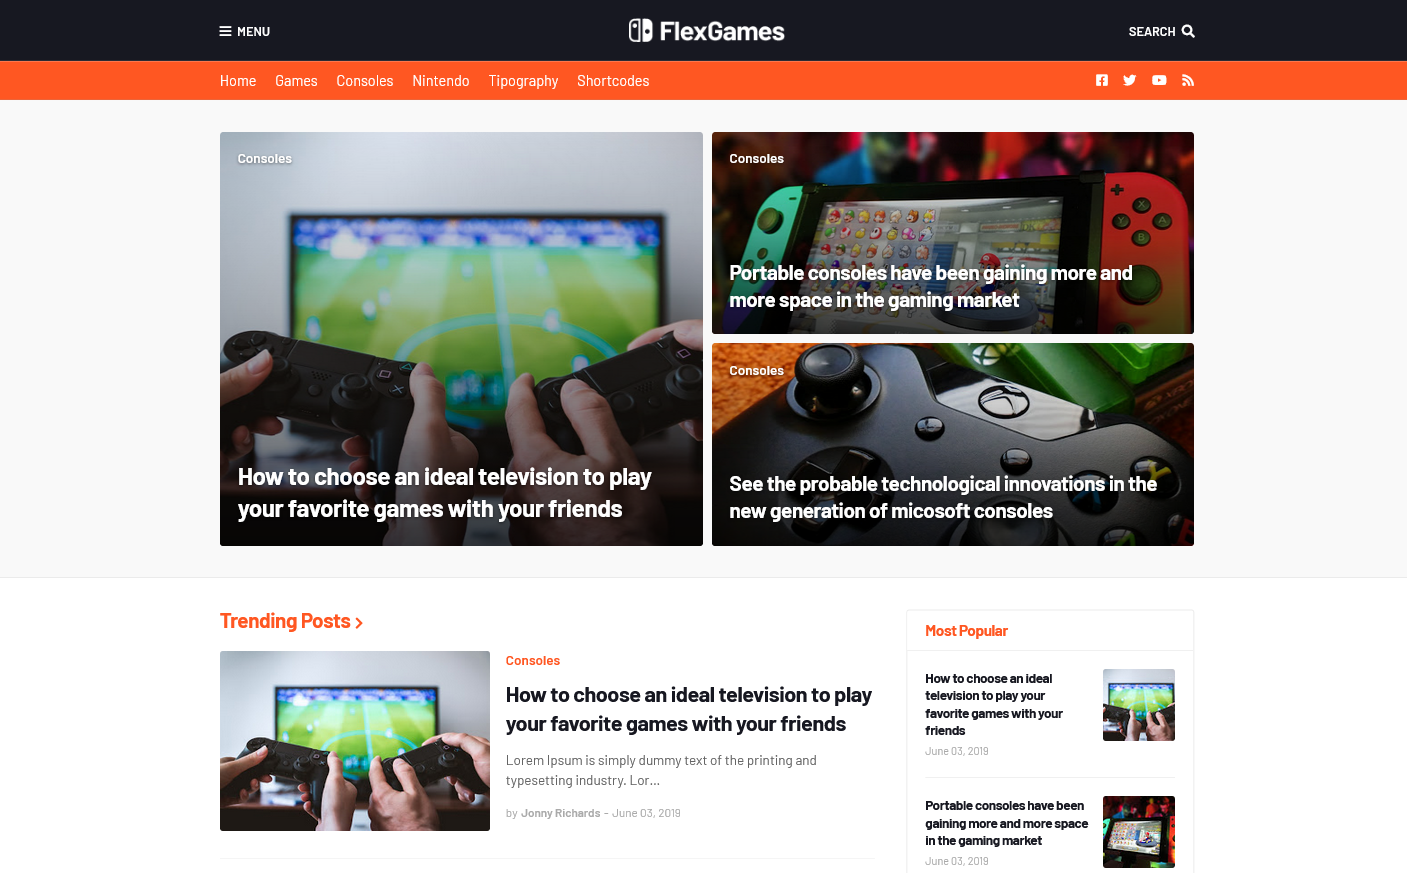 FlexNews - Responsive Blog & Magazine Blogger Template flexnews blogger template free download flexnews - responsive blog & magazine blogger template FlexNews Premium - Responsive Blog & Magazine Blogger   FlexNews Premium - Responsive Blog & Magazine Blogger Templates.  FlexNews is a fast, flexible & powerful Blogger template for News, Blog and Magazine websites. FlexNews is totally  USD 9.00 · Main LinkDownload Now Server 2Second LinkDownload Now · [Free ] Igniplex 2.6 - Premium Blogger Template   Flexnews Blogger Template Responsive and Seo Optimized   Mar 21, 2020 - Flexnews blogger template is responsive and seo optimized theme. You can use this blogger theme for magazine and news related blog.  FlexNews Blogger Template Premium Free Download  19-Jun-2019 — FlexNews is a fast, flexible &aml powerful Blogger template for News, Blog and Magazine websites. FlexNews Blogger Template is totally cust  [Free Download] FlexNews - Responsive Blog  - BigNulled  Free Download FlexNews – Responsive Blog & Magazine Blogger Template (Nulled) Latest Version FlexNews is a fast, flexible & powerful Blogger template for  Missing: premium   Must include: premium  FlexNews Blogger Template Premium Free Download 2021  24-Mar-2021 — FlexNews Blogger Template Premium Free Download 2021, professional blogger templates free, premium blogger templates cracked, xml   FlexNews - Responsive Blog & Magazine Blogger Template   Support for Premium - Contact Us. - v1.1.0 – 3 July 2019 Fixed: LightBox mode does not work in some cases. Improved: Transition in the Slide Menu. - v1.  FlexNews - Responsive Blog & Magazine Blogger Template  FlexNews is a premium responsive Blog & Magazine Blogger Template. It is a fast,  So Download FlexNews  01-Jan-2021 · Uploaded by Templateify  [Free Download] FlexNews - Responsive Blog  - NullPress  19-Jun-2019 — Free download FlexNews - Responsive Blog & Magazine Blogger Template Nulled. This item was published on themeforest.net and sold by.  FlexNews - Respon